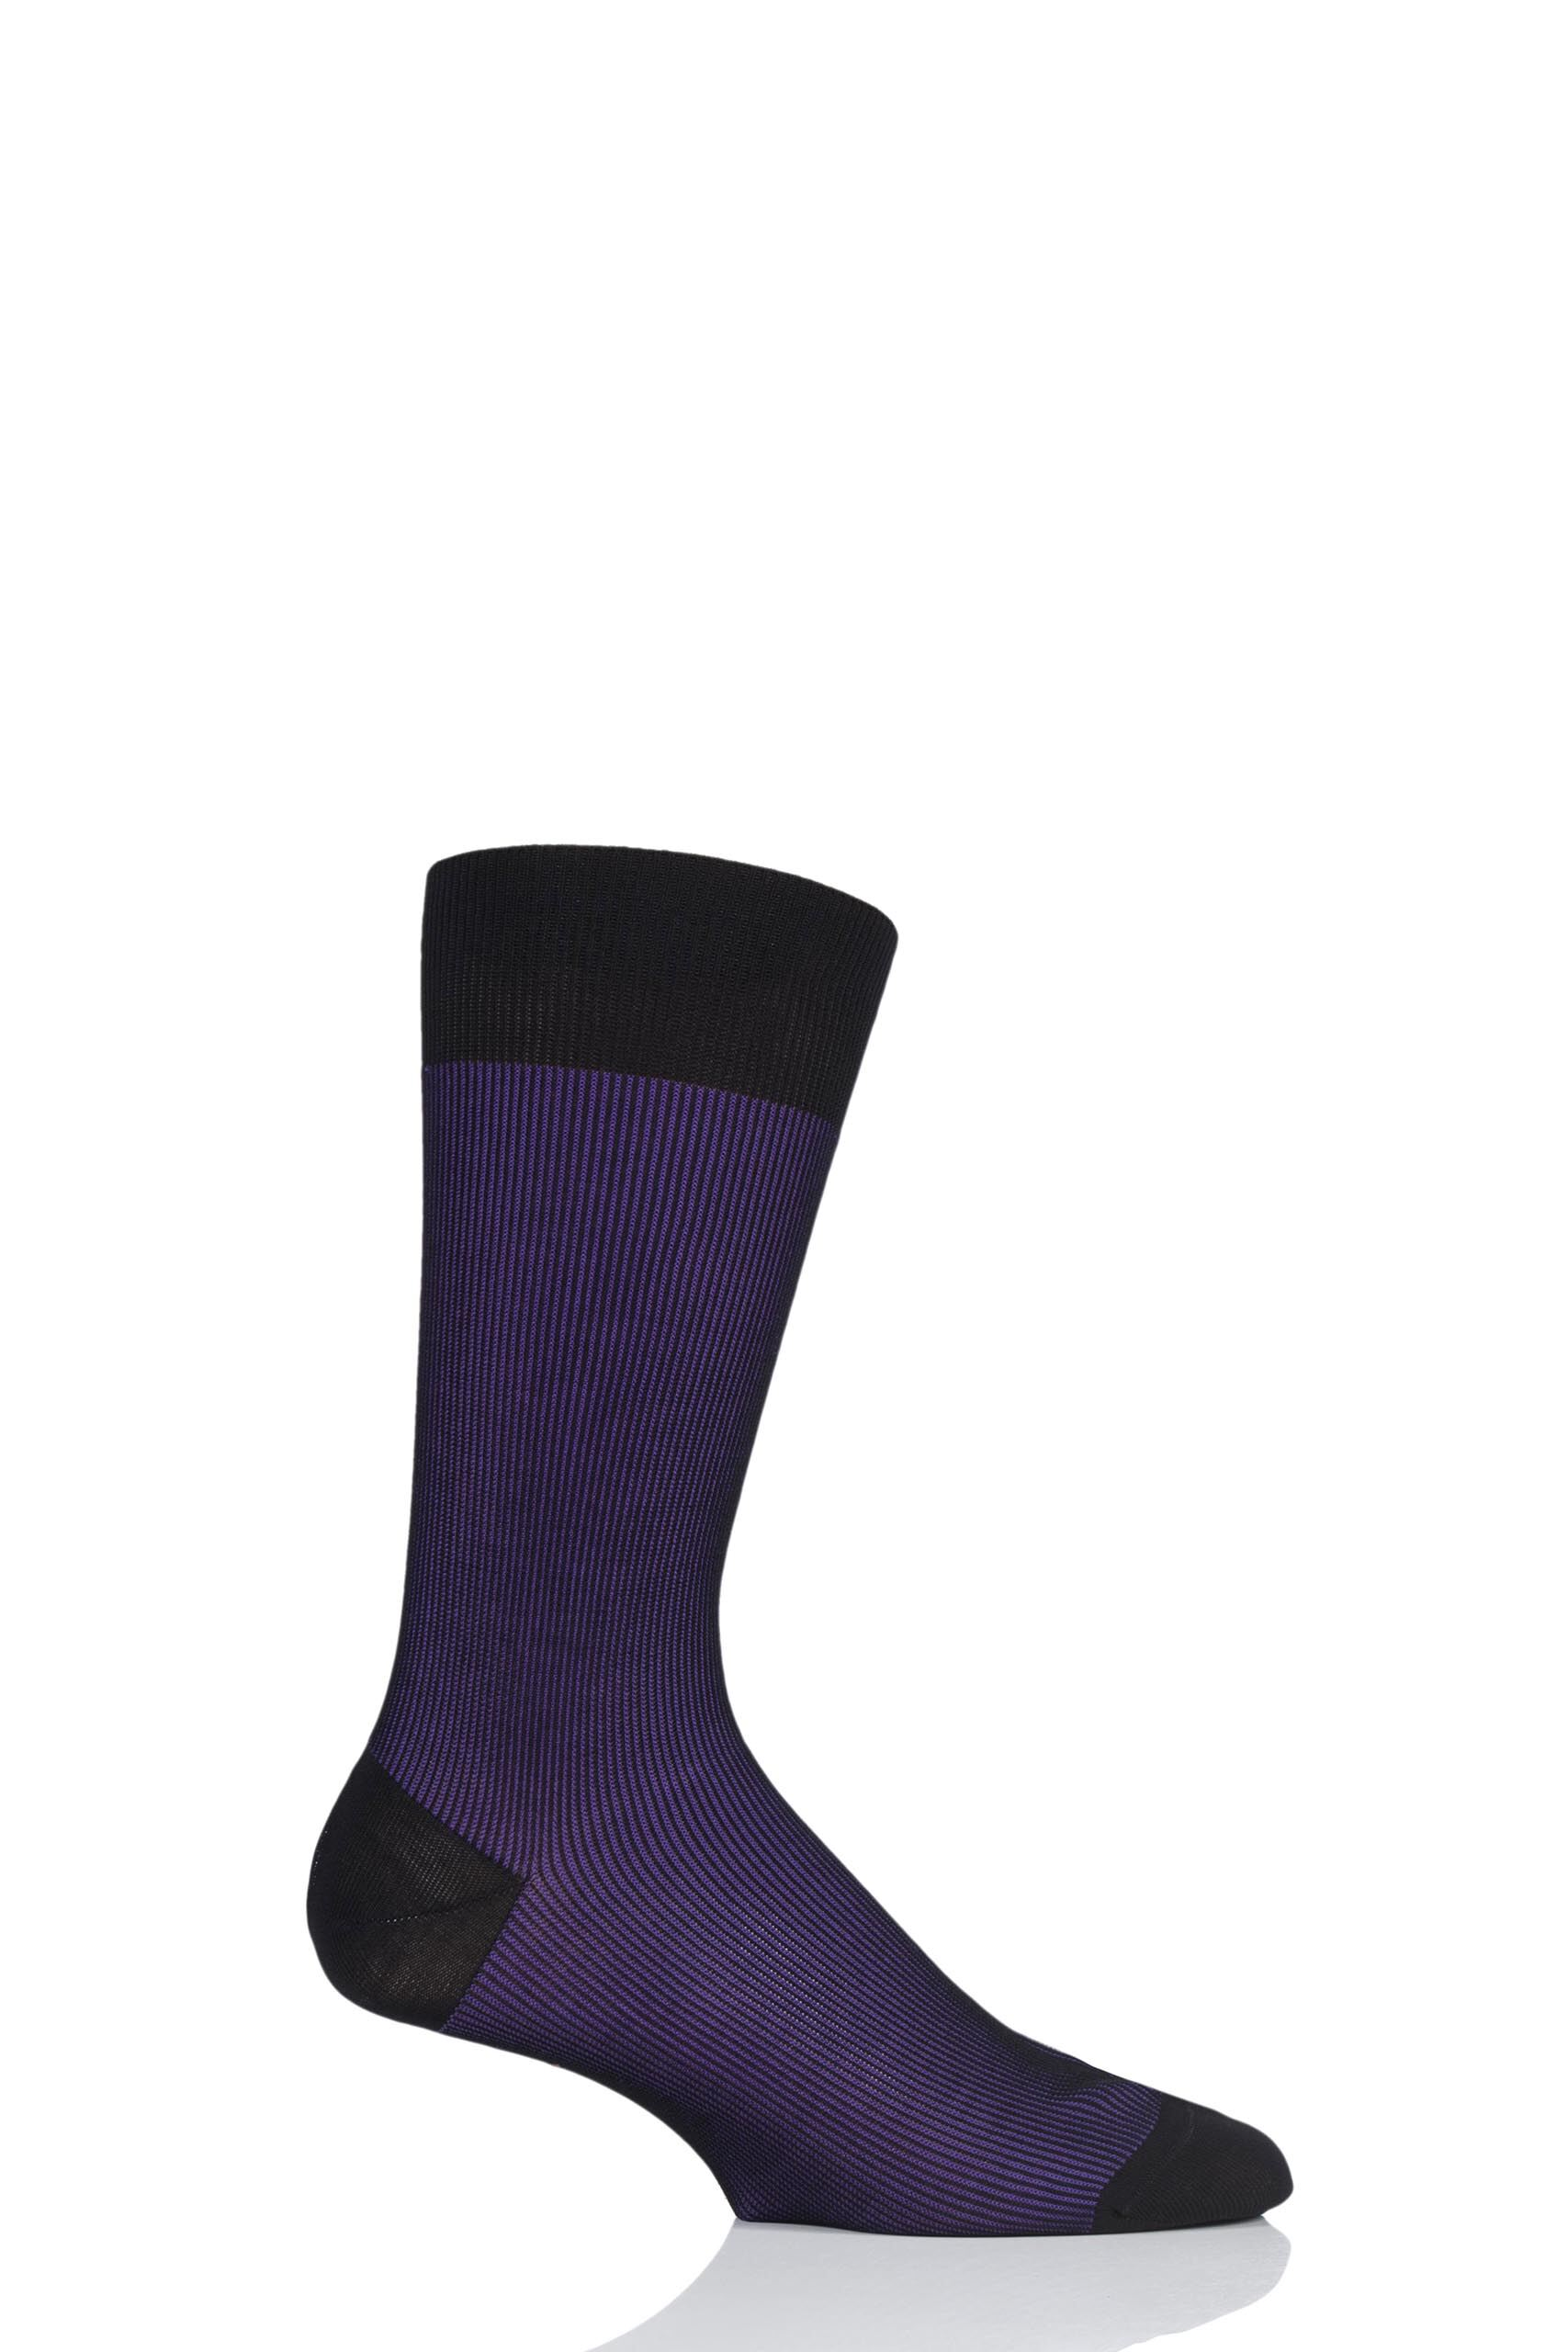 Image of 1 Pair Black 2 Santos Shadow Rib Cotton Lisle Socks Men's 7.5-9.5 Mens - Pantherella